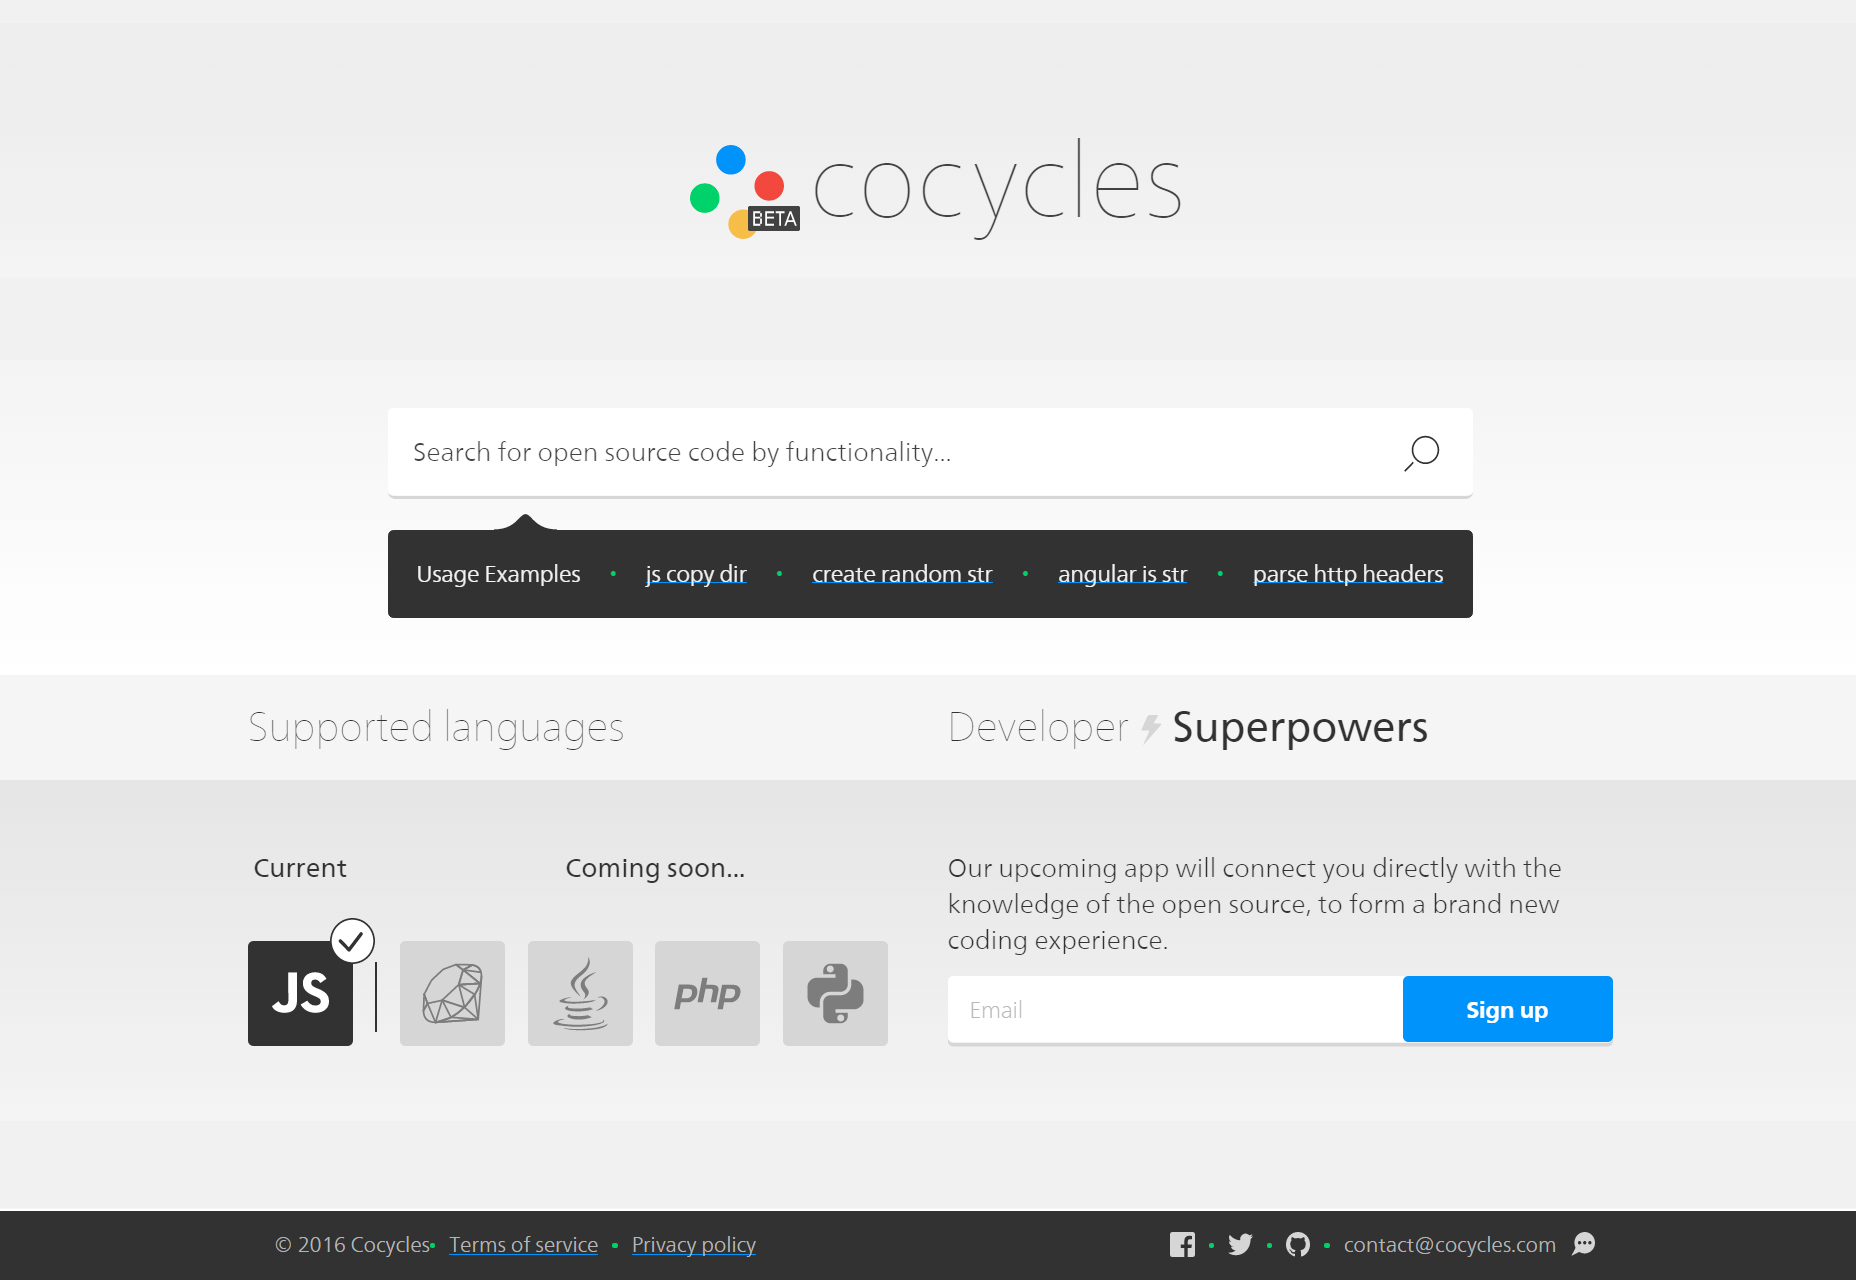 Cocycles: Functionality Code Search